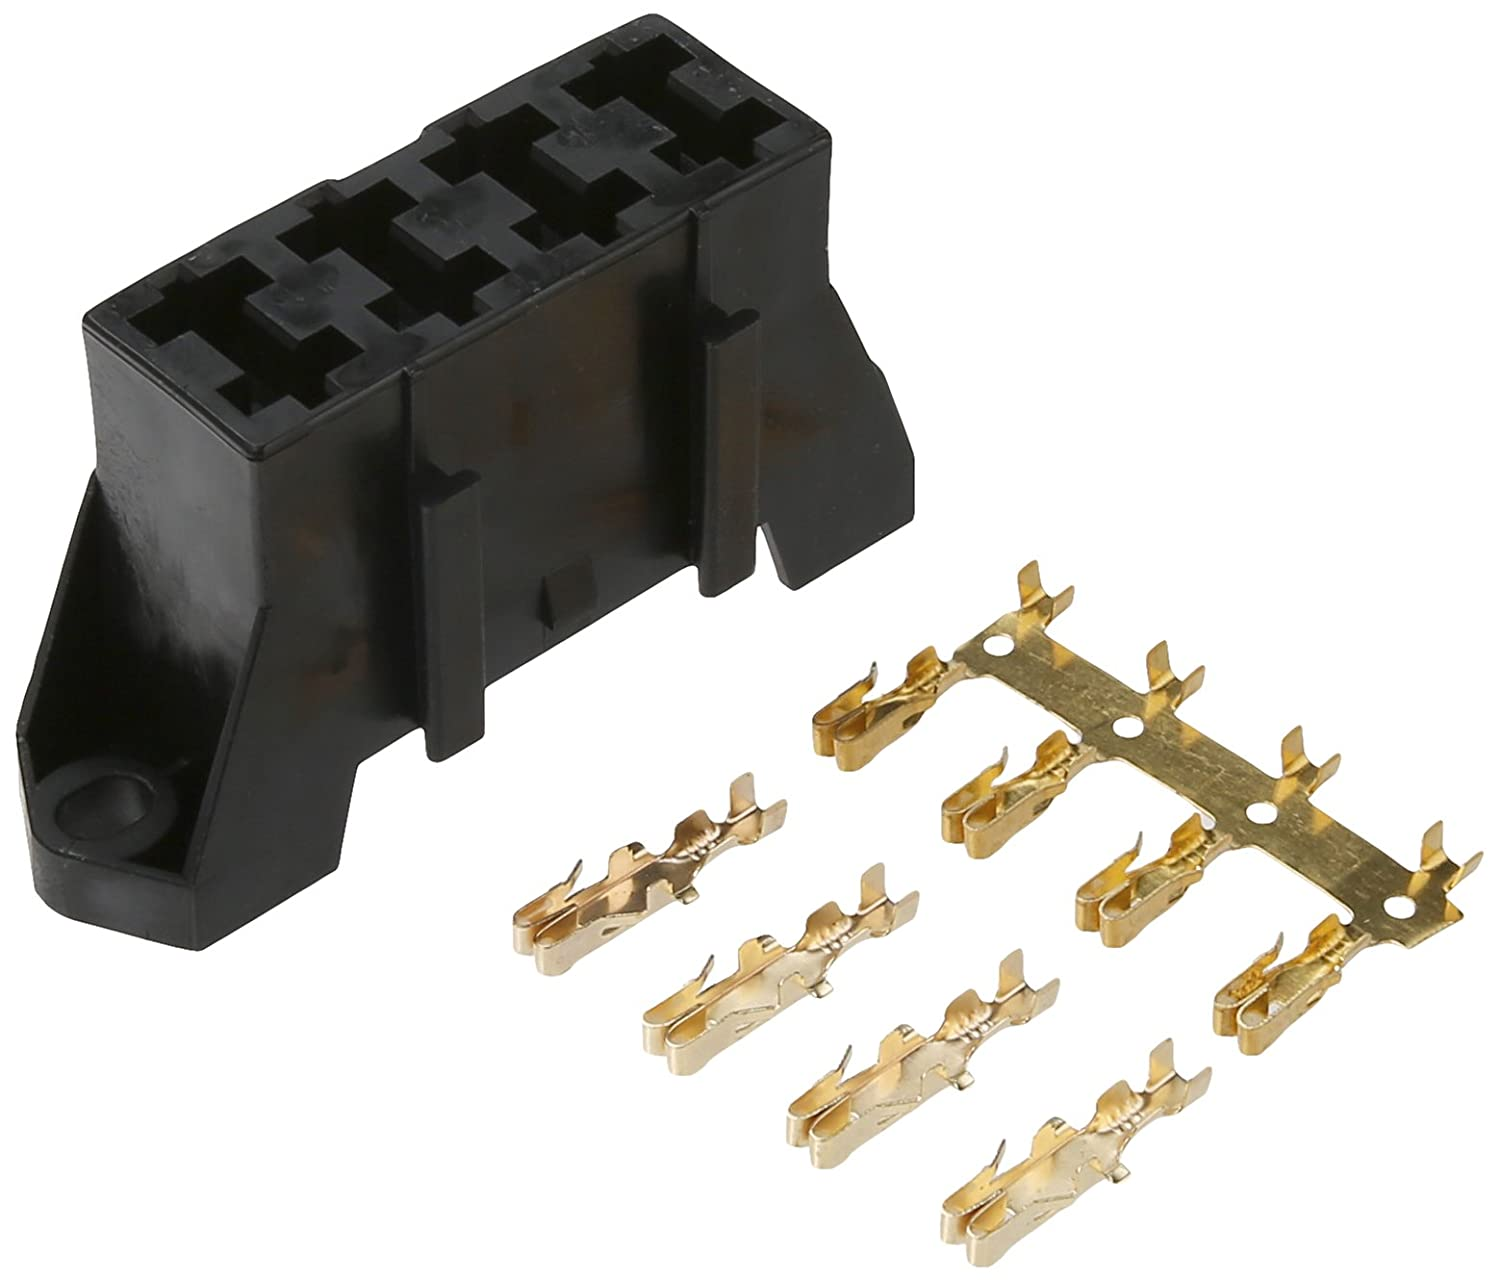 Amazon.com: Dorman 85668 Black Fuse Block Holds 4 Blade Fuses: Automotive